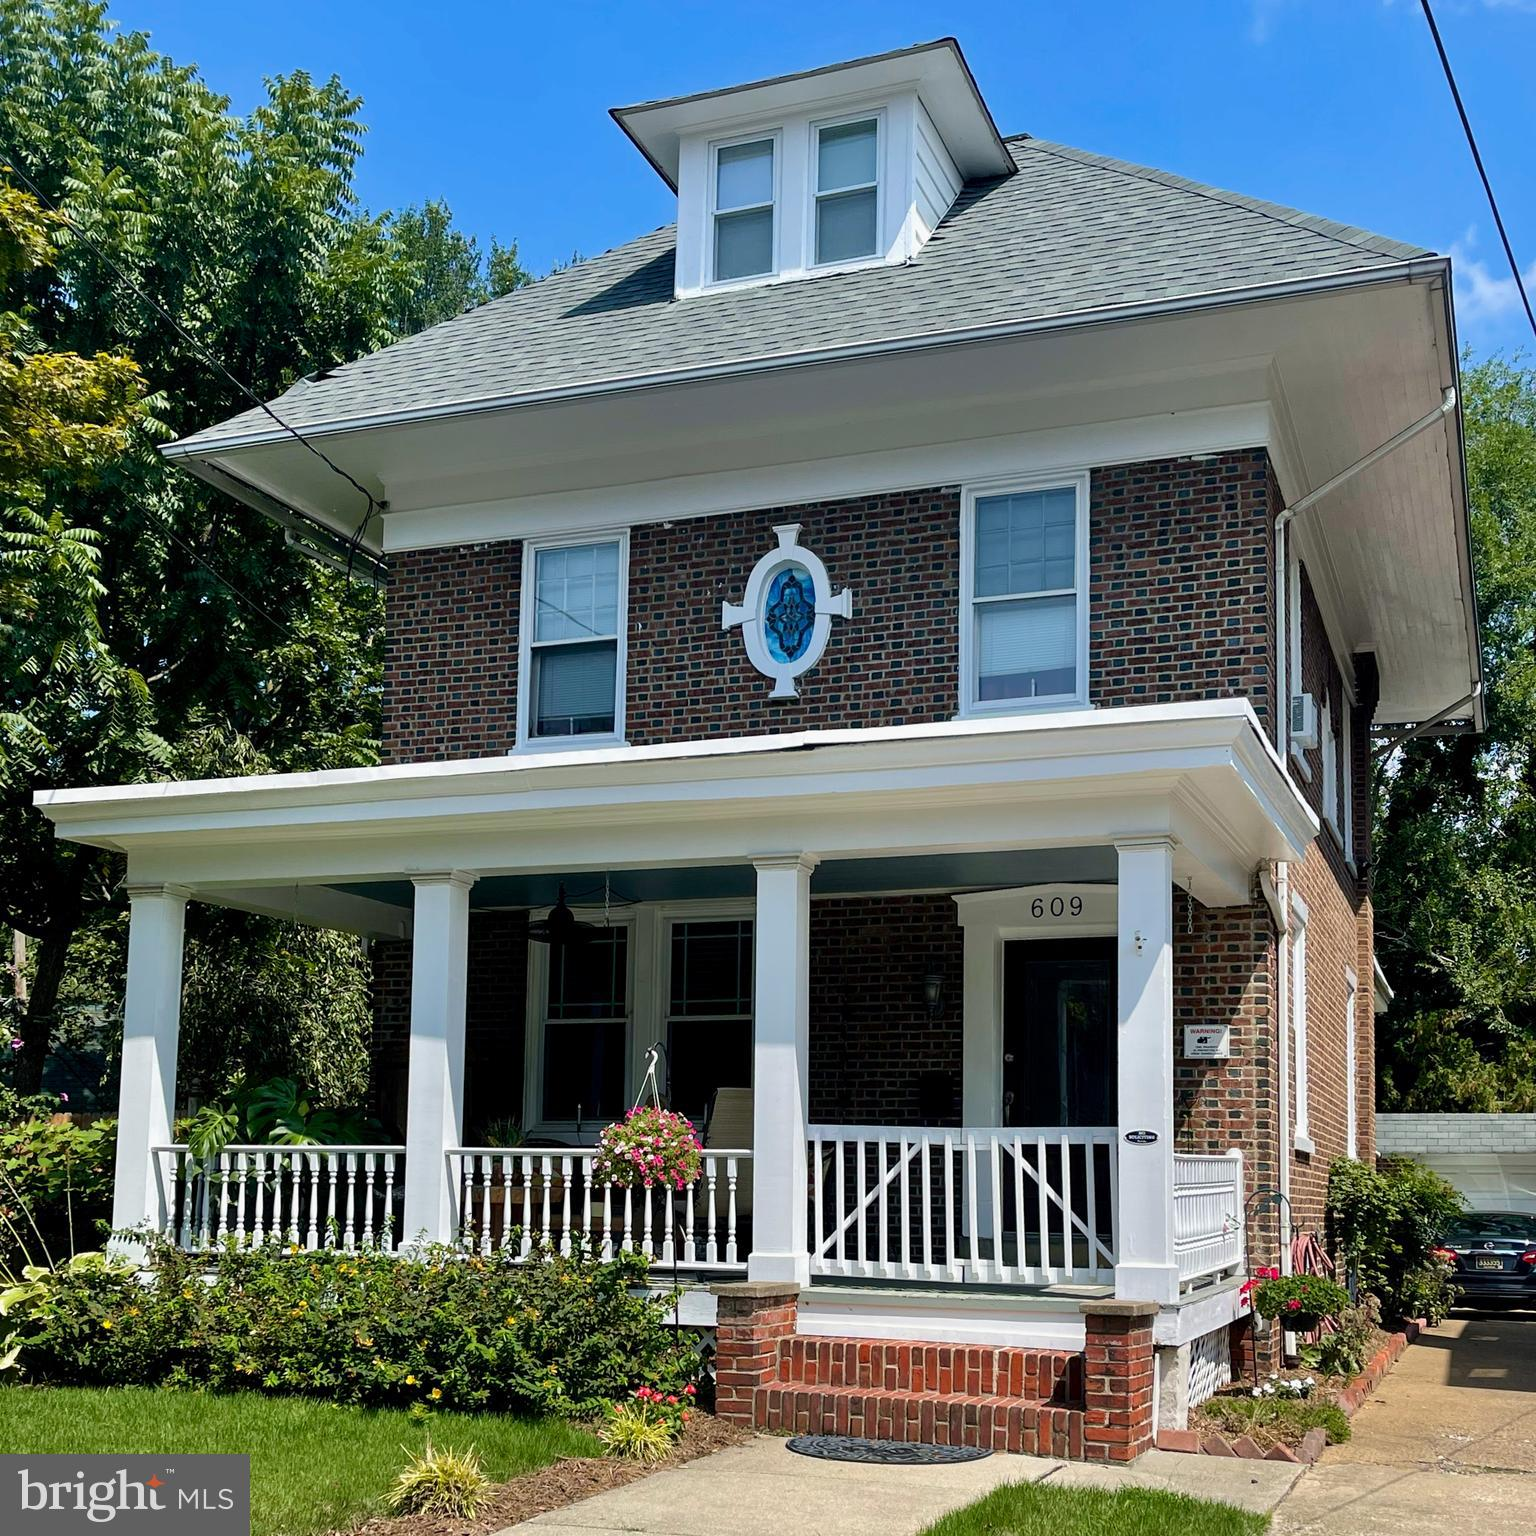 Looking for all the Bells and Whistles in your new home? How 'bout a grant for 17,500 for qualifying Buyers? NO, you do not need to be a 1st time Buyer and NO you do NOT need to pay if back! (Inquire for more info) Looking for Old World elegance and Super Solid Construction along with today's WANT LIST, such as an updated Master En-suite Bath with a Jacuzzi tub & high-end Kohler fixtures & its own Laundry Room! Looking for the convenience of your own Off-Street Parking plus a 1 Car Garage? Well here you go just one house in off Historic Baynard Blvd, 609 W 23rd st offers over 2000 sq ft of graceful living space with great flow, so if you like to entertain you are SET! Start with the Open Front Porch, then enter through an elegant insulated entrance door (with etched glass insert) to a lovely foyer which is opened to the gracious Living & Dining Rooms, which opens through French Doors to the Breakfast/Dinner Sitting area. This sitting area is further enhanced with lots of light streaming through the insulated French Doors giving views of the Private Fenced Back Yard & Trex Deck, complete with an irrigation system!! This sitting space is also open to the well-appointed Kitchen, featuring Maple cabinetry, Granite Counters, Oak Flooring, Gas Cooking, Dishwasher, Custom made Pot Rack, Deep SS Sink with a Gooseneck faucet & Garbage Disposal plus Under Counter Lighting. Off the Kitchen, enter the roomy through-way appointed with Wainscoting paneling & coat/hat hooks & a roomy, updated Powder Room, featuring high-end Kohler Fixtures. This thru-way connects back to the Foyer & Dining Room, creating a comfortable and easy flow. Floor-to-Ceiling bay windows grace the living & dining rooms adding turn-of-the-century architectural detail. Large insulated replacement windows bring in scrumptious daylight all day long. There are several stain glass windows which mark the heightened Craftsmanship evident through & through. Hardwood floors abound throughout the1st & 2nd stories & up